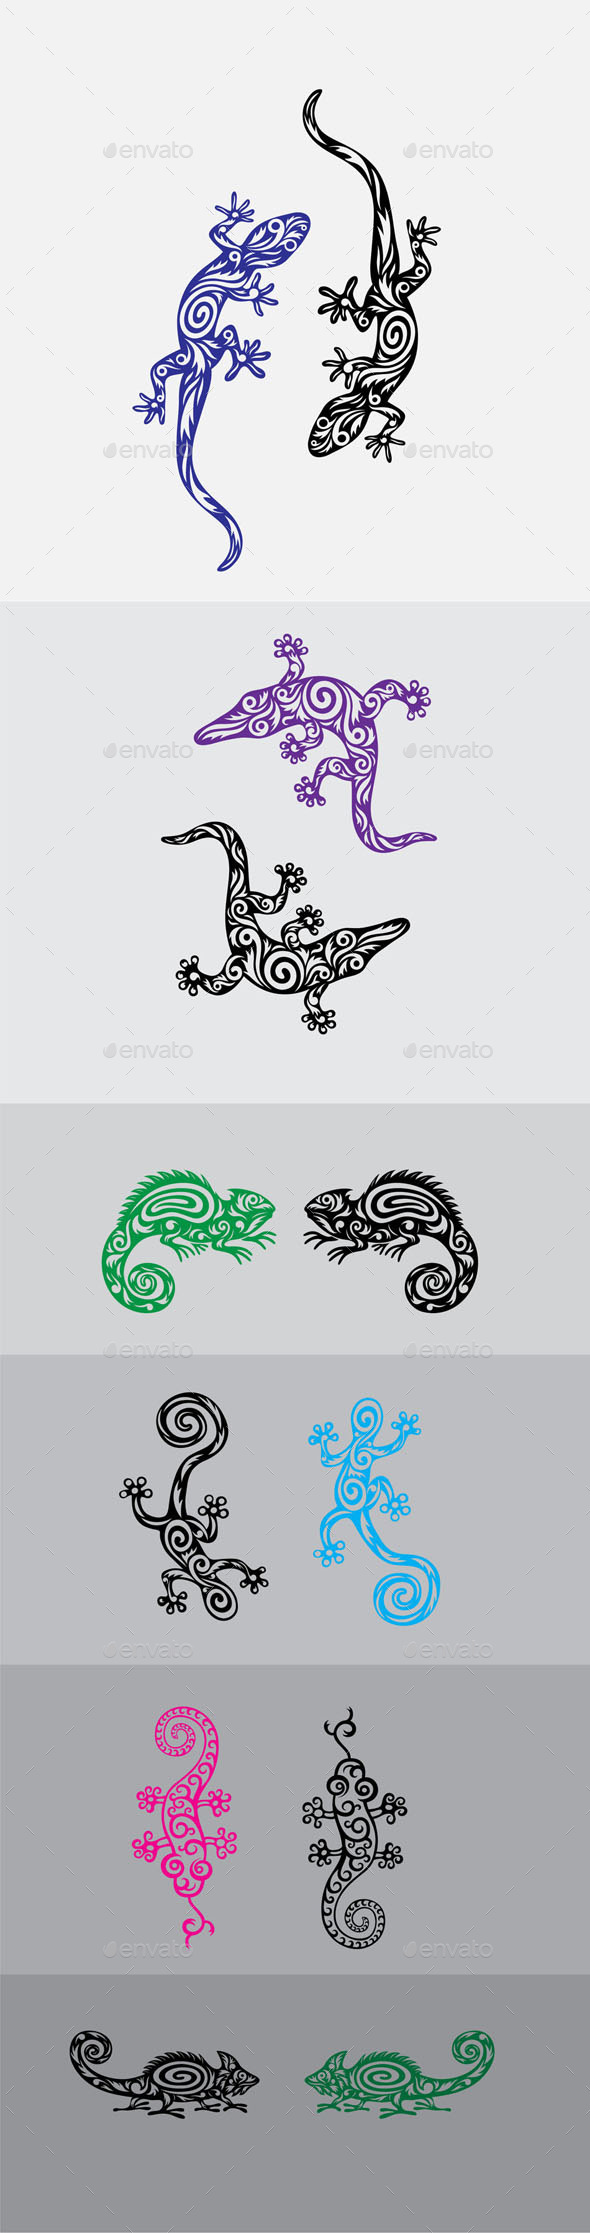 GraphicRiver Lizard Ornament Set 9640234